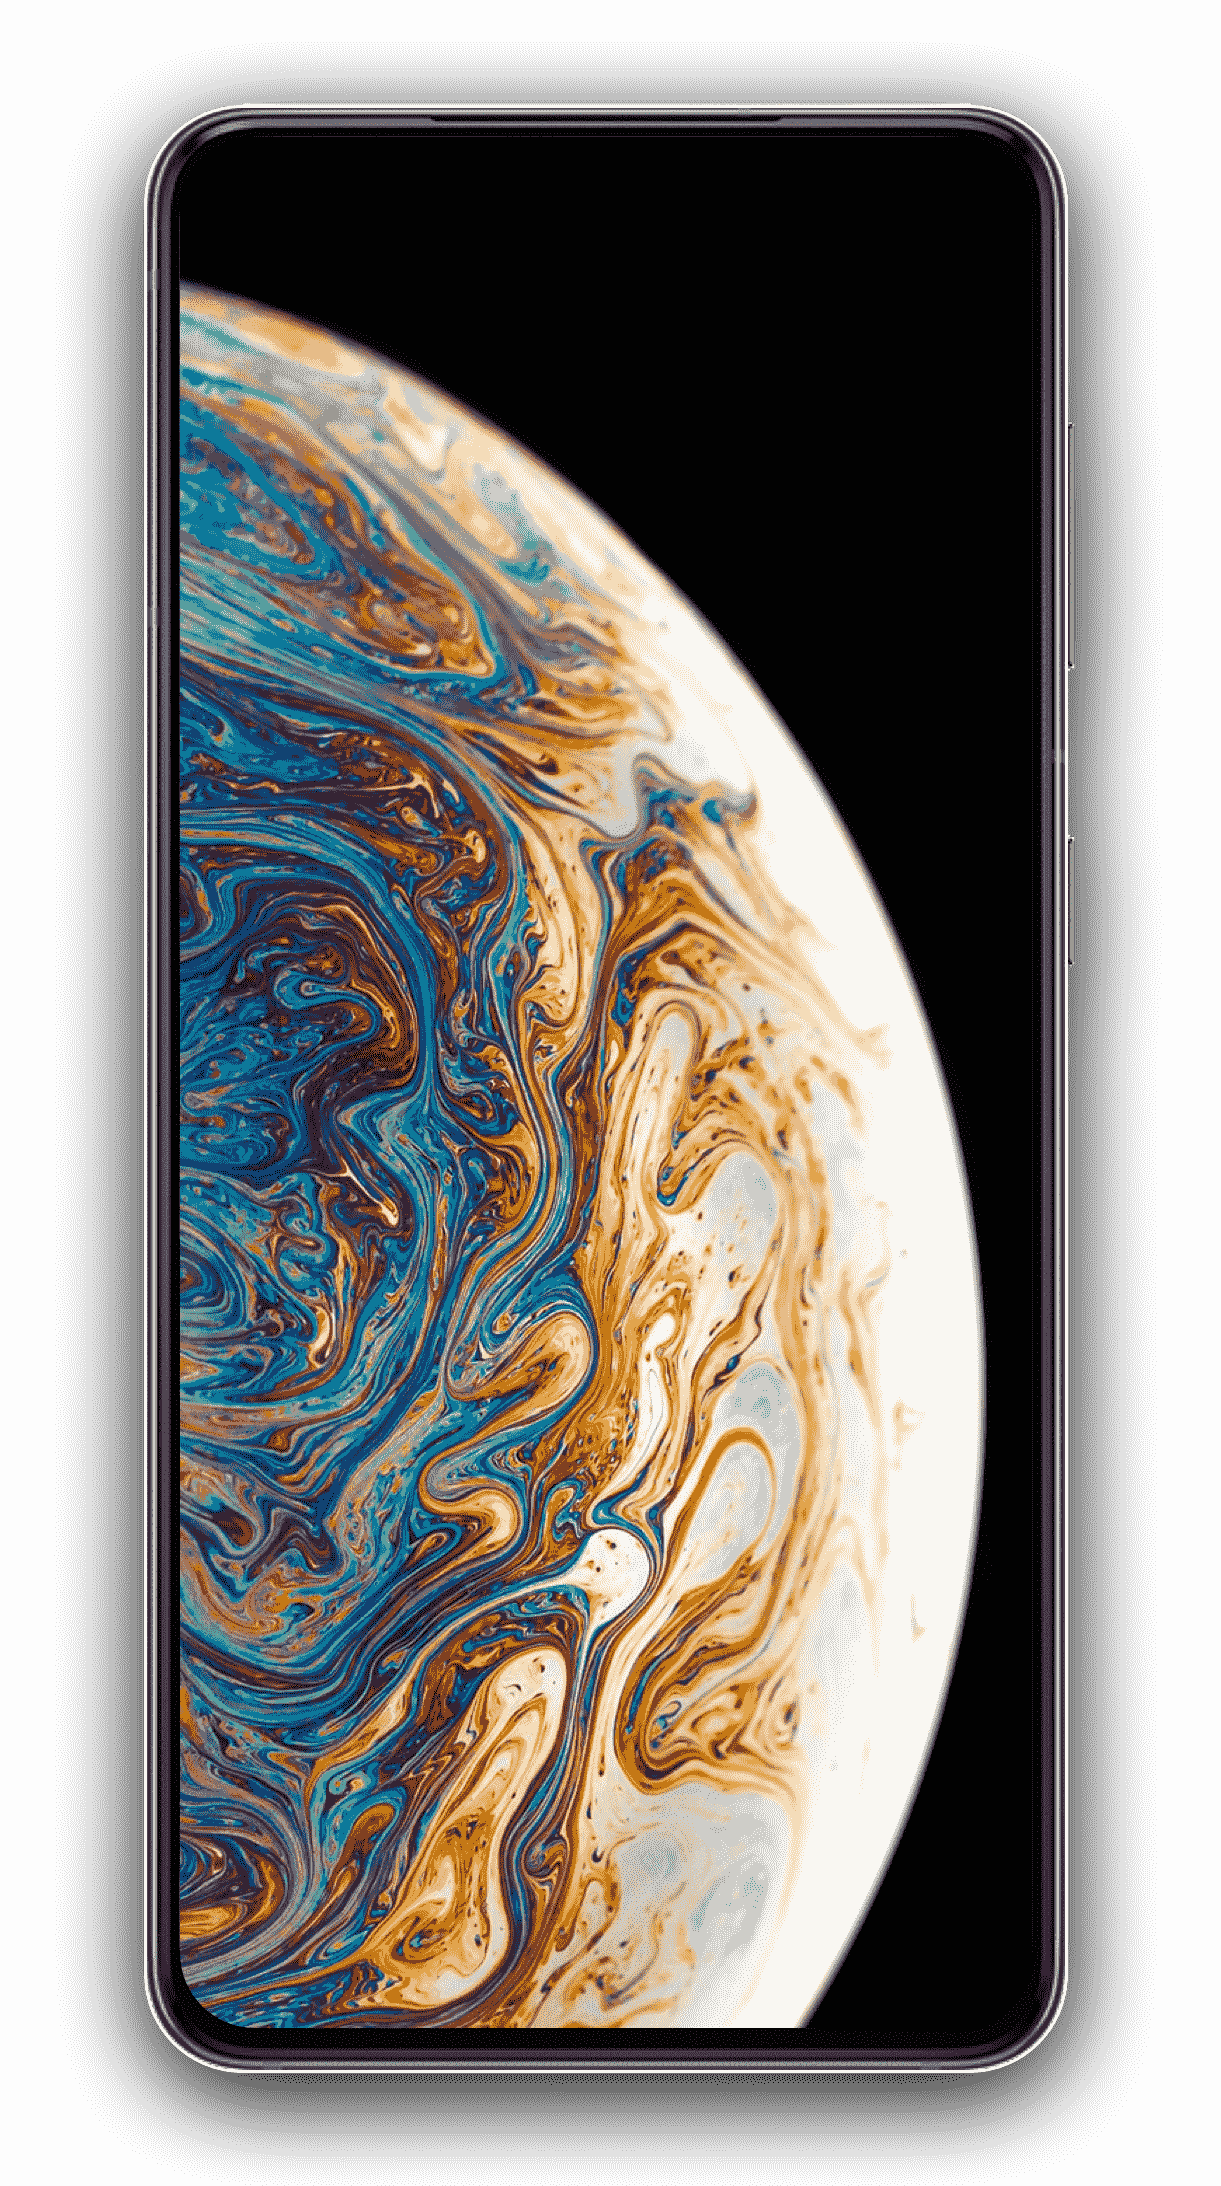 iPhone with swirling colored planet